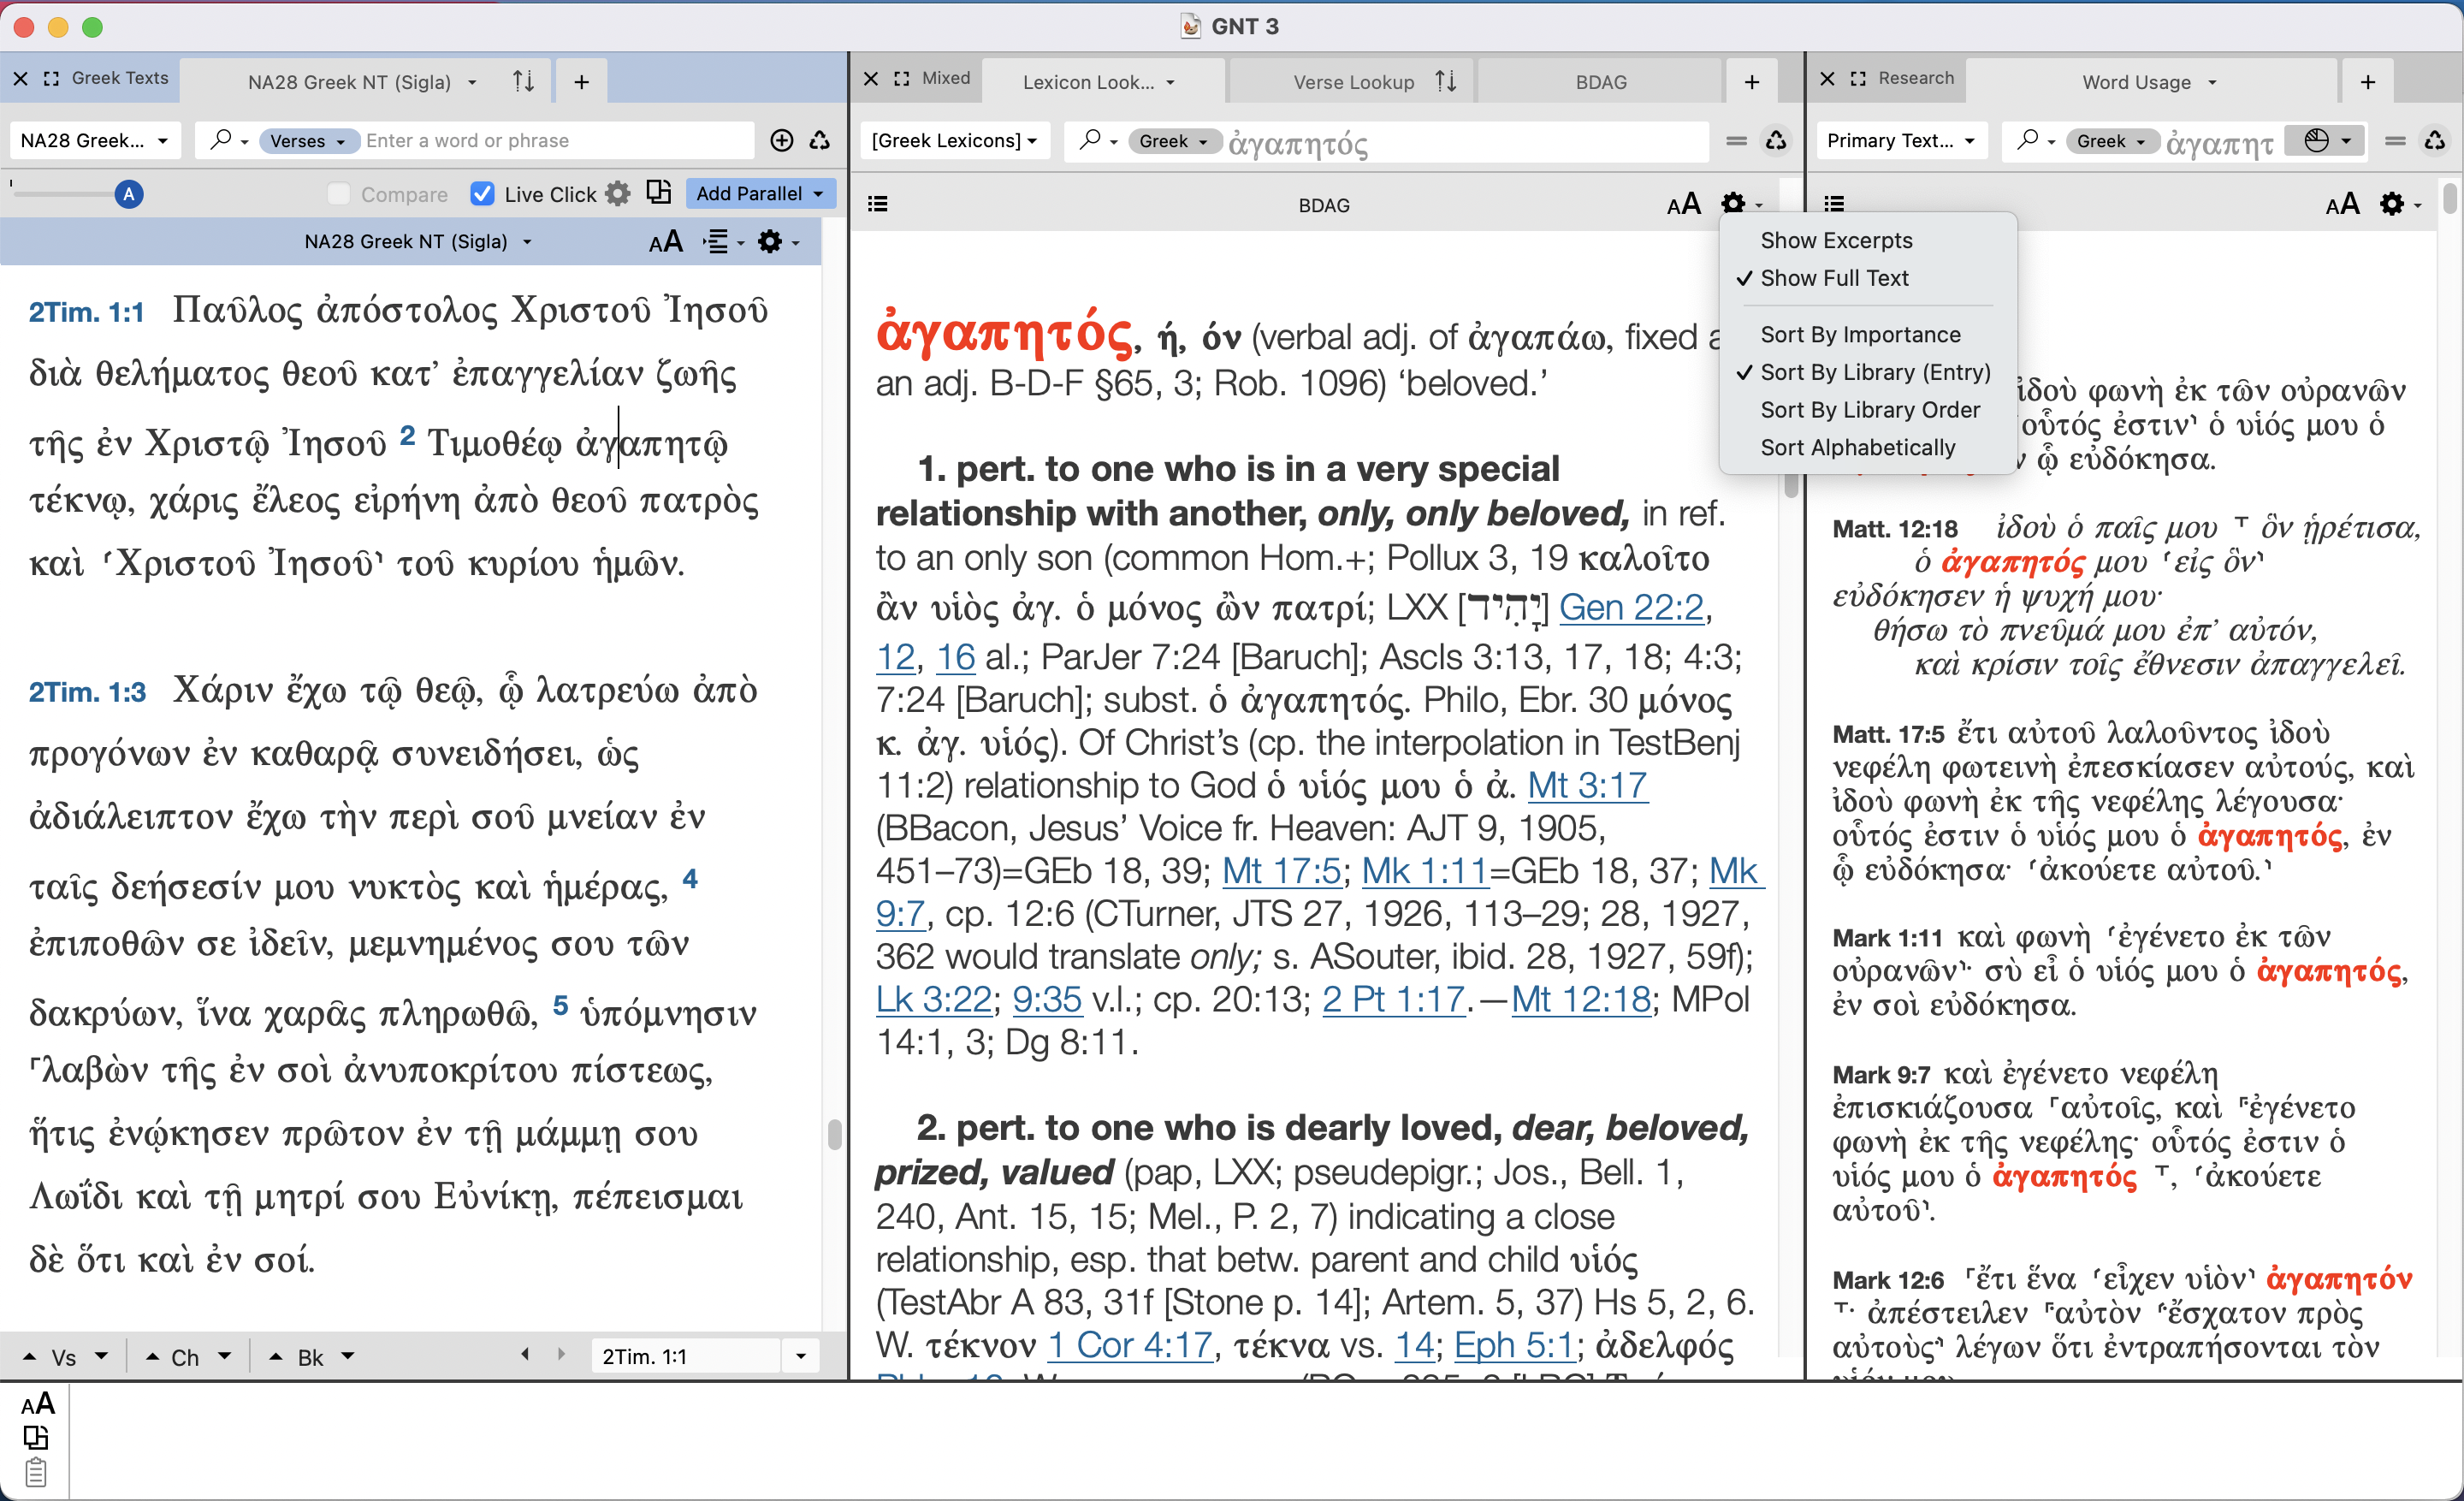 Lexicon Settings: Show Full Text & Sort by Library (Entry)